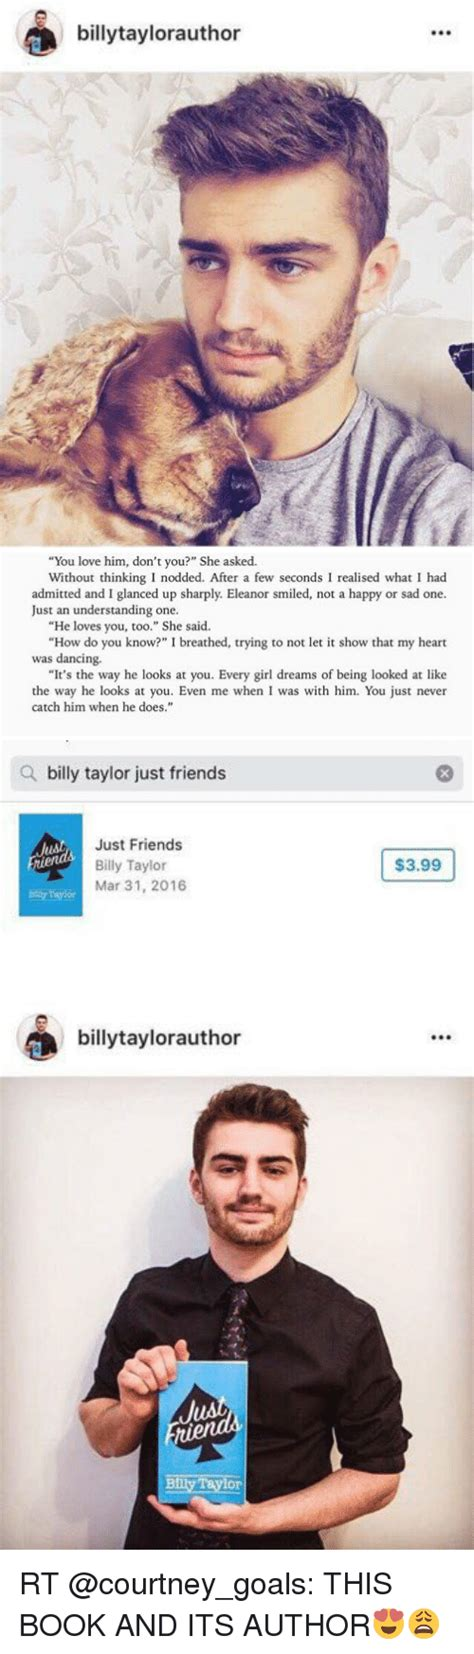 she asked for it books billytaylorauthor you him don t you she asked without